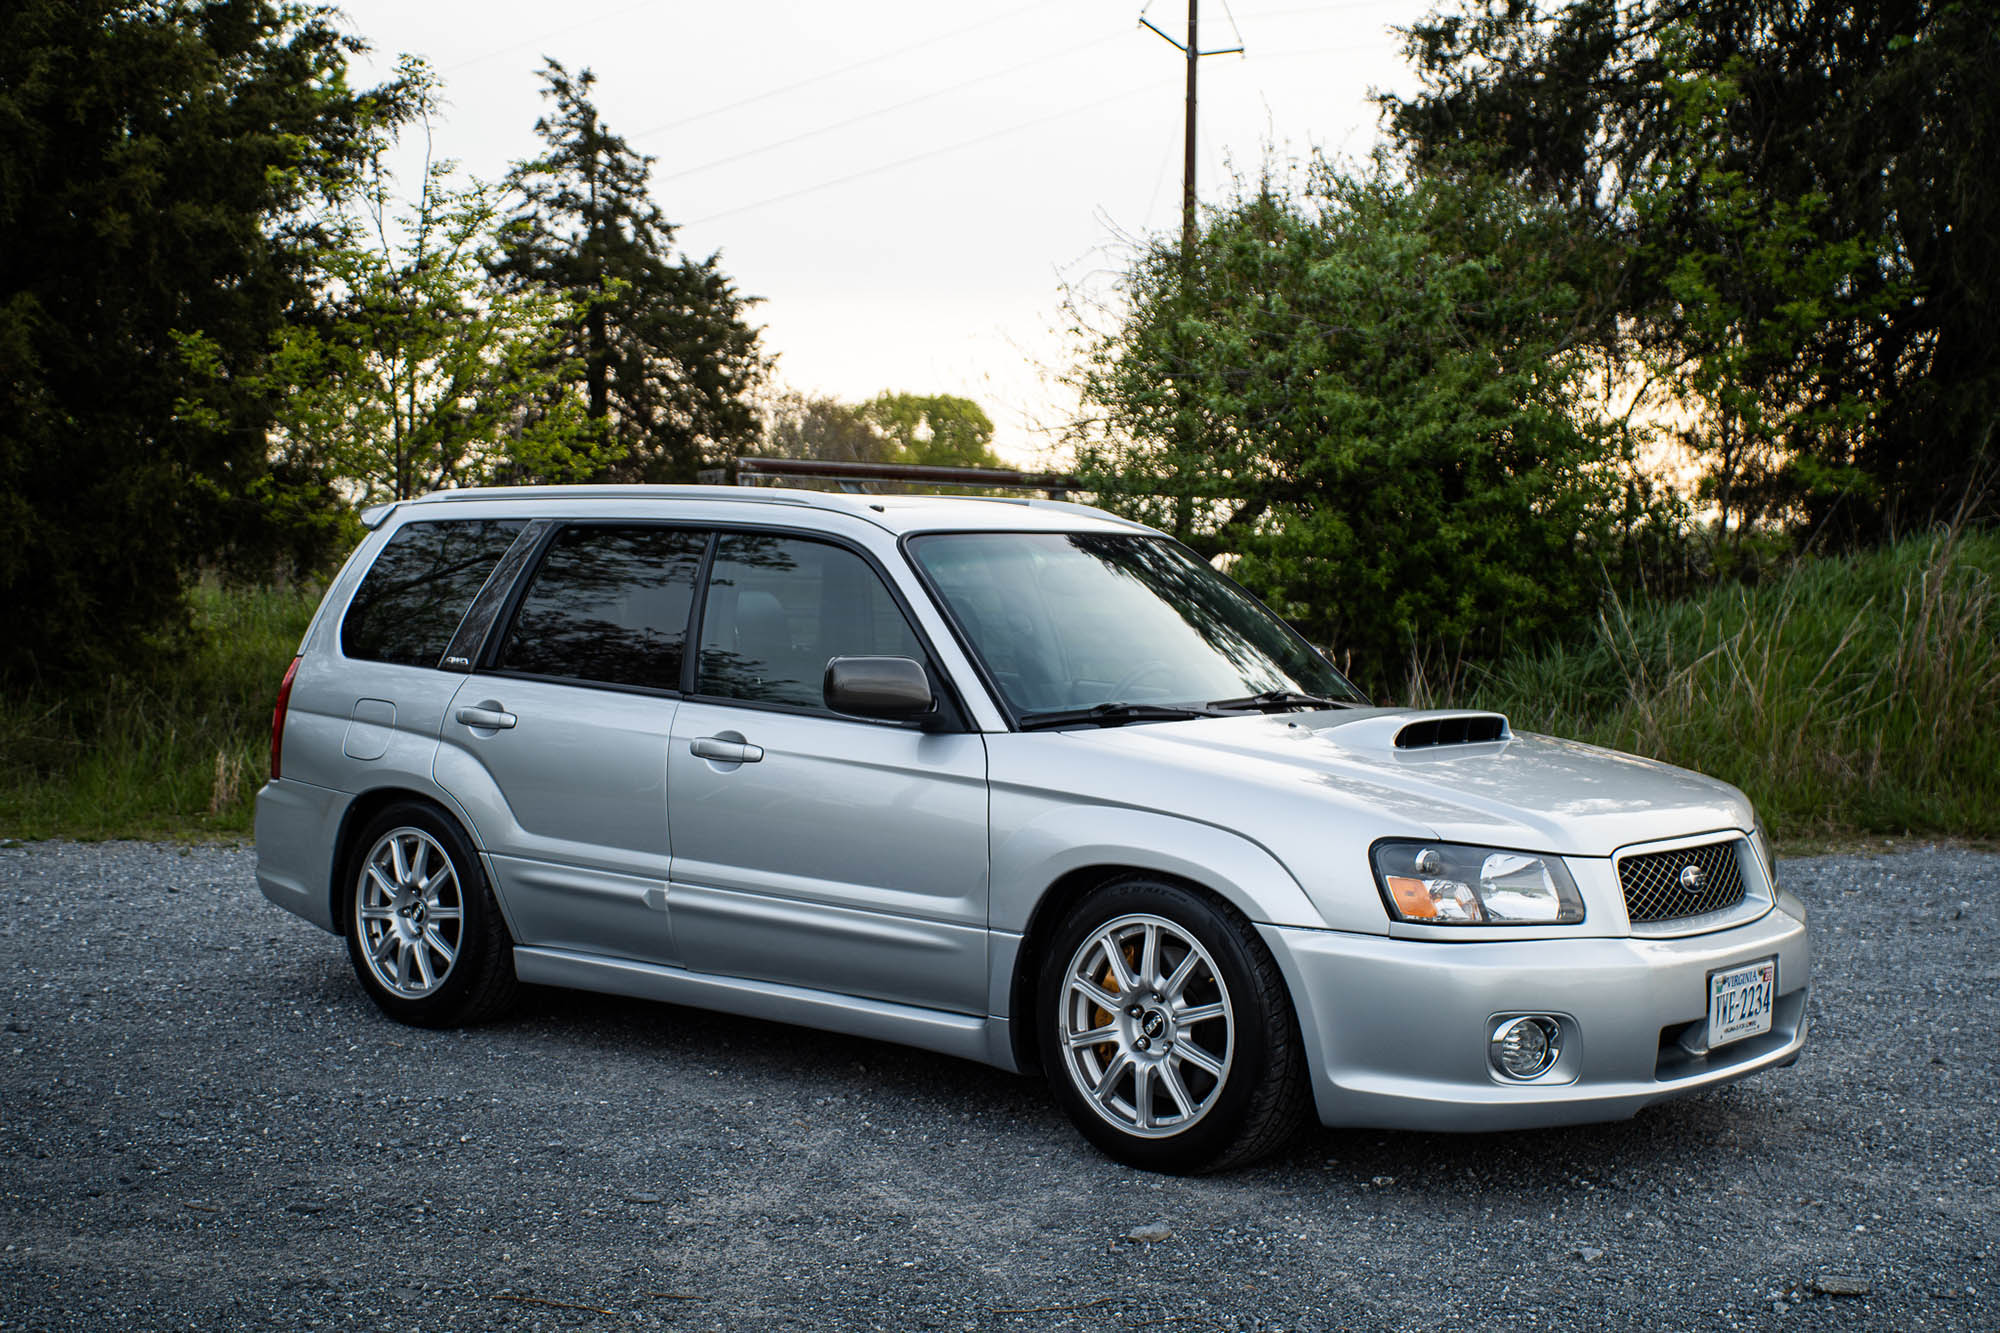 2004 Subaru Forester with a turbo EJ257 flat-four